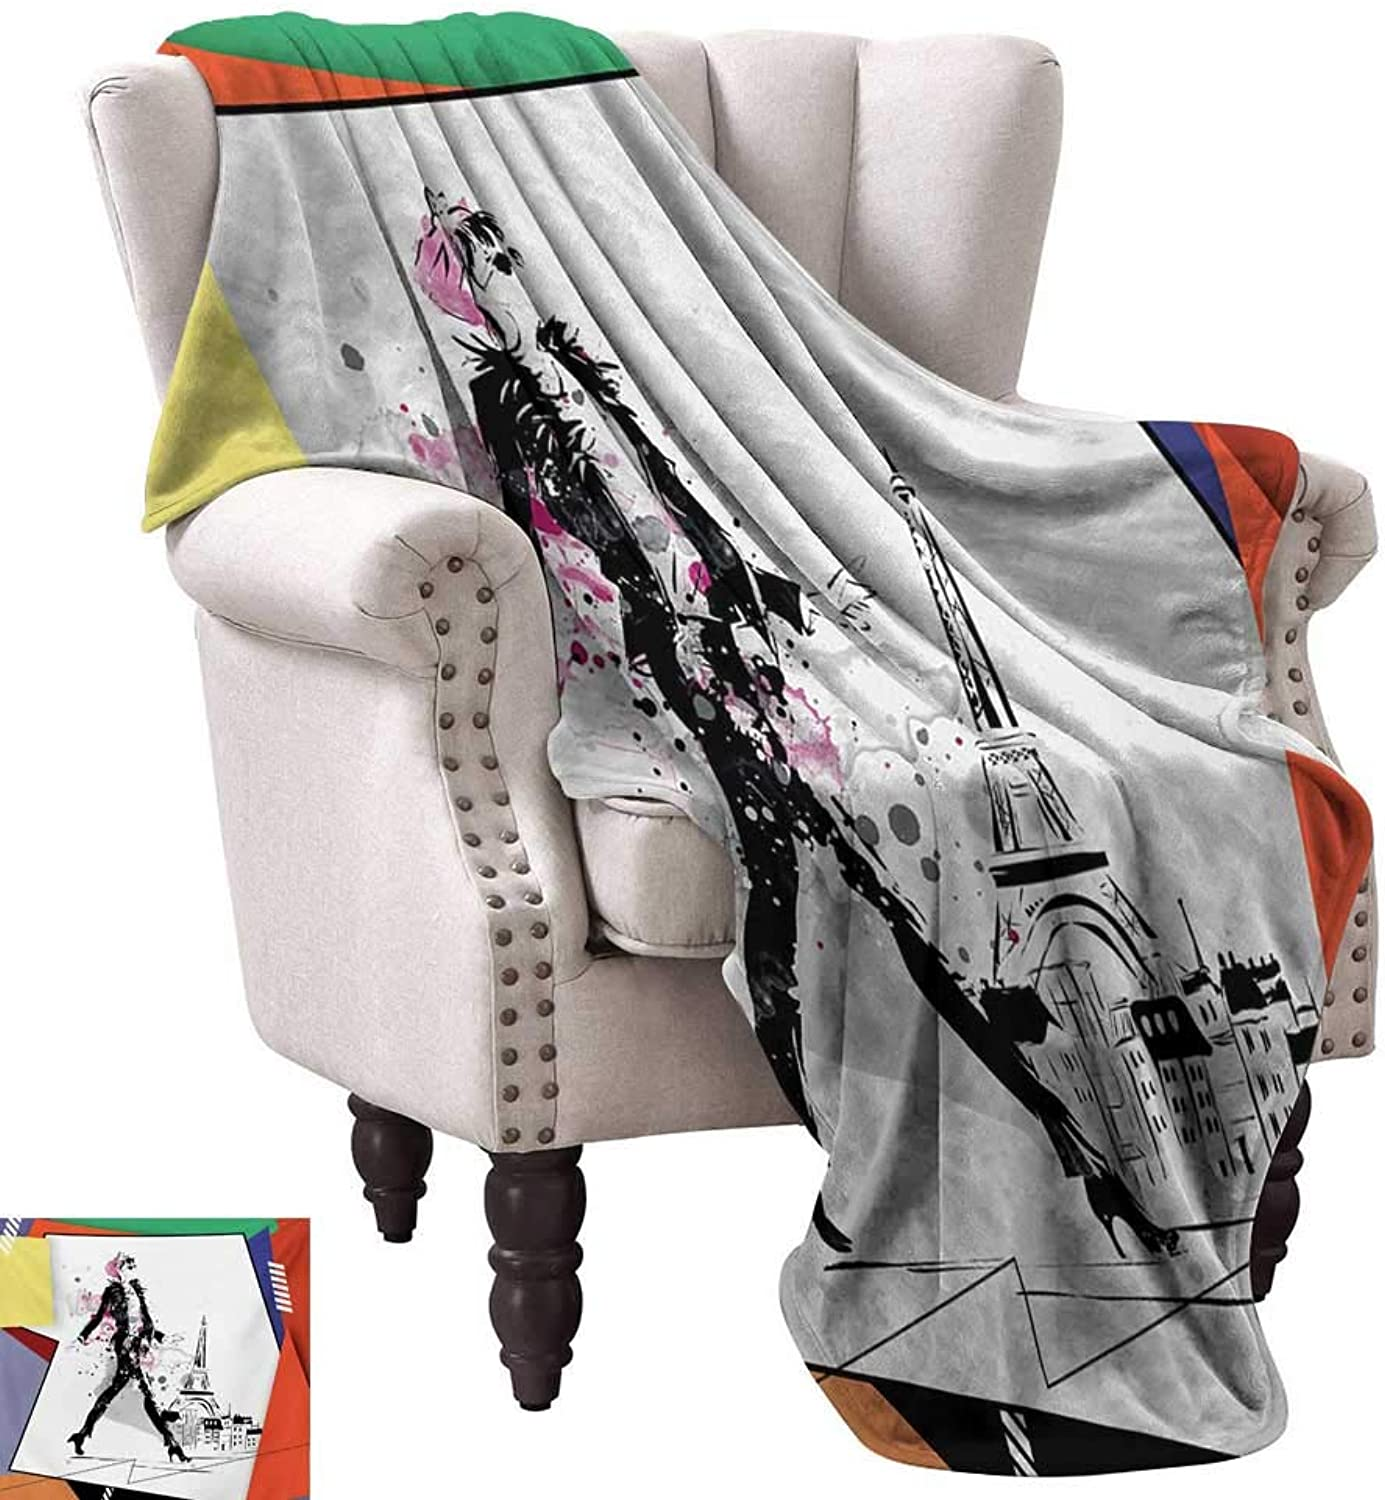 Anyangeight Warm Microfiber All Season Blanket,A Girl Walking in The Streets of Paris Sketch Style Romantic Eiffel Tower Image 60 x50 ,Super Soft and Comfortable,Suitable for Sofas,Chairs,beds